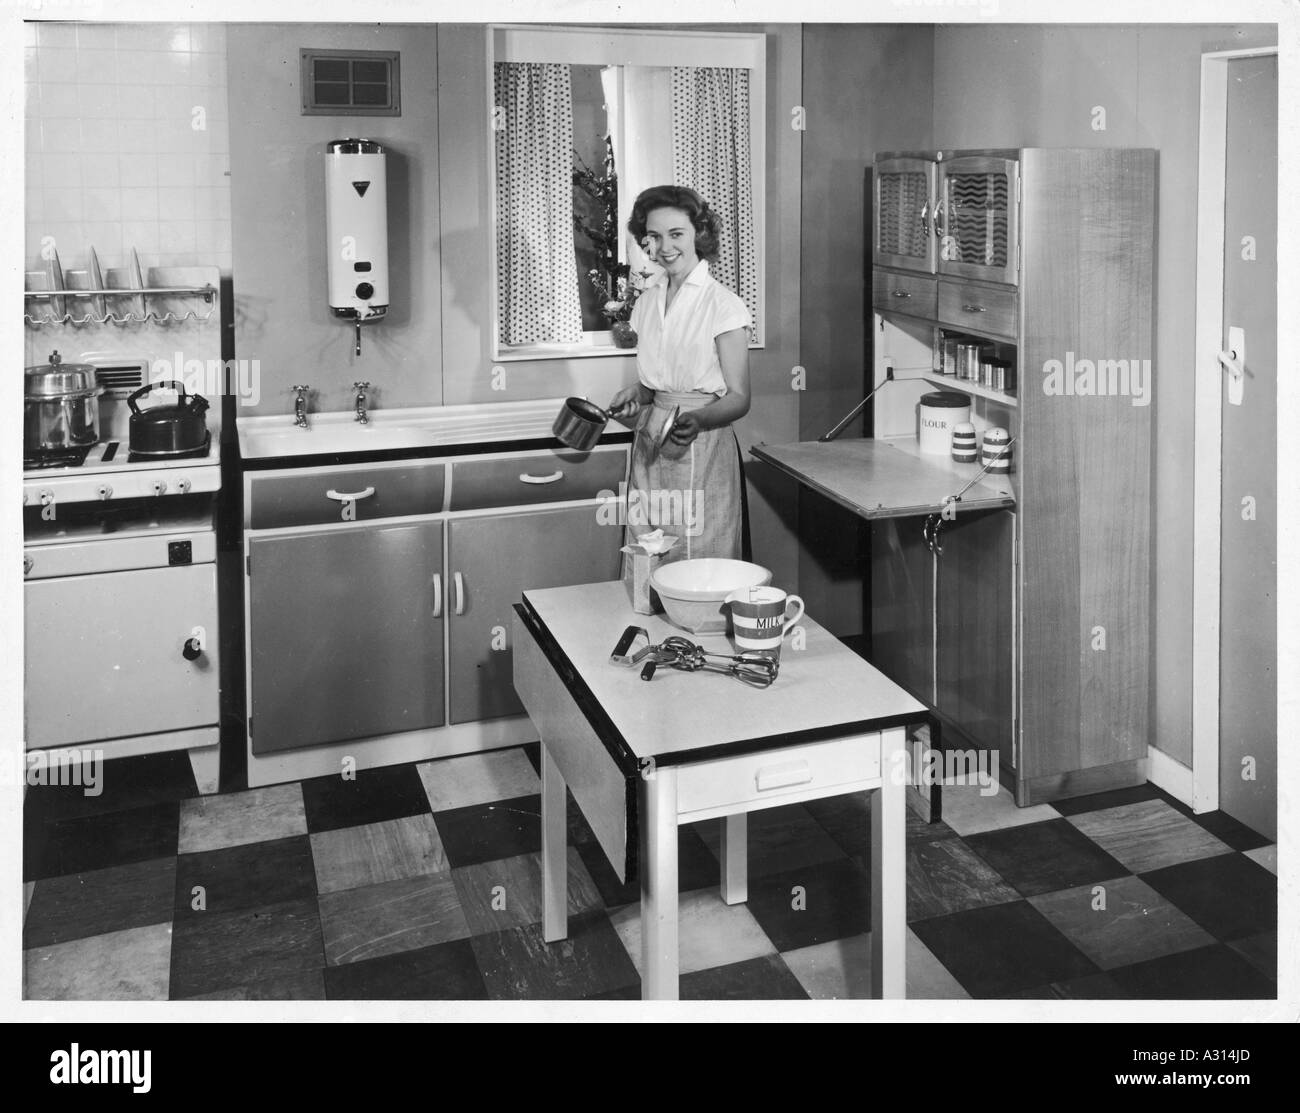 Latest 1950s kitchen stock image